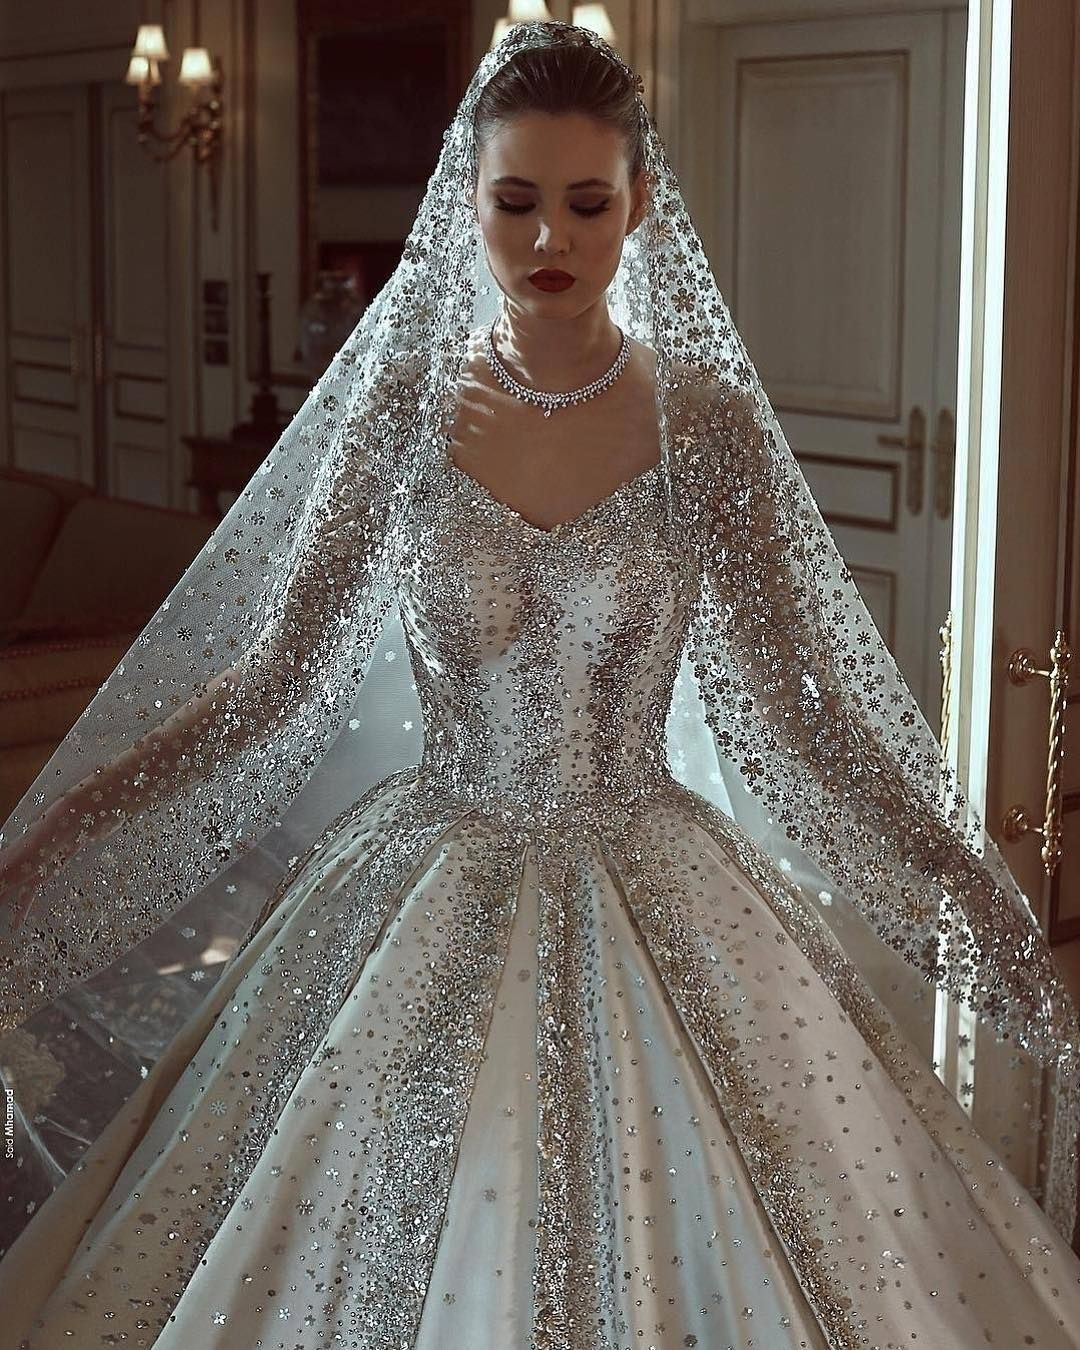 Craziest Wedding Dresses Ever Worn: Never Let Your Sparkle Dull! @sadekmajedcouture New 2018